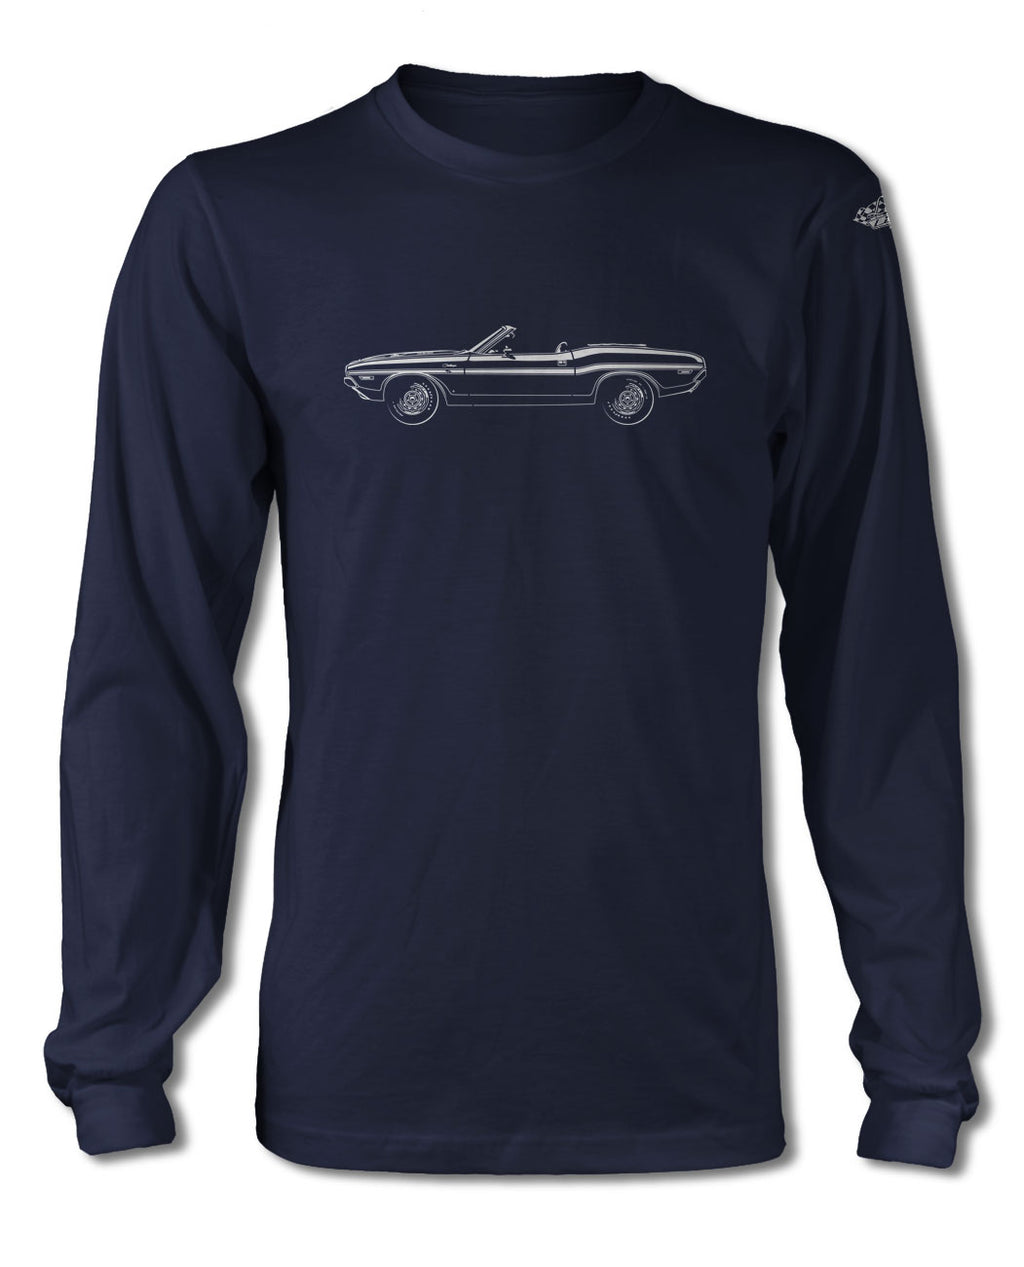 1970 Dodge Challenger RT with Stripes Convertible Bulge Hood T-Shirt - Long Sleeves - Side View